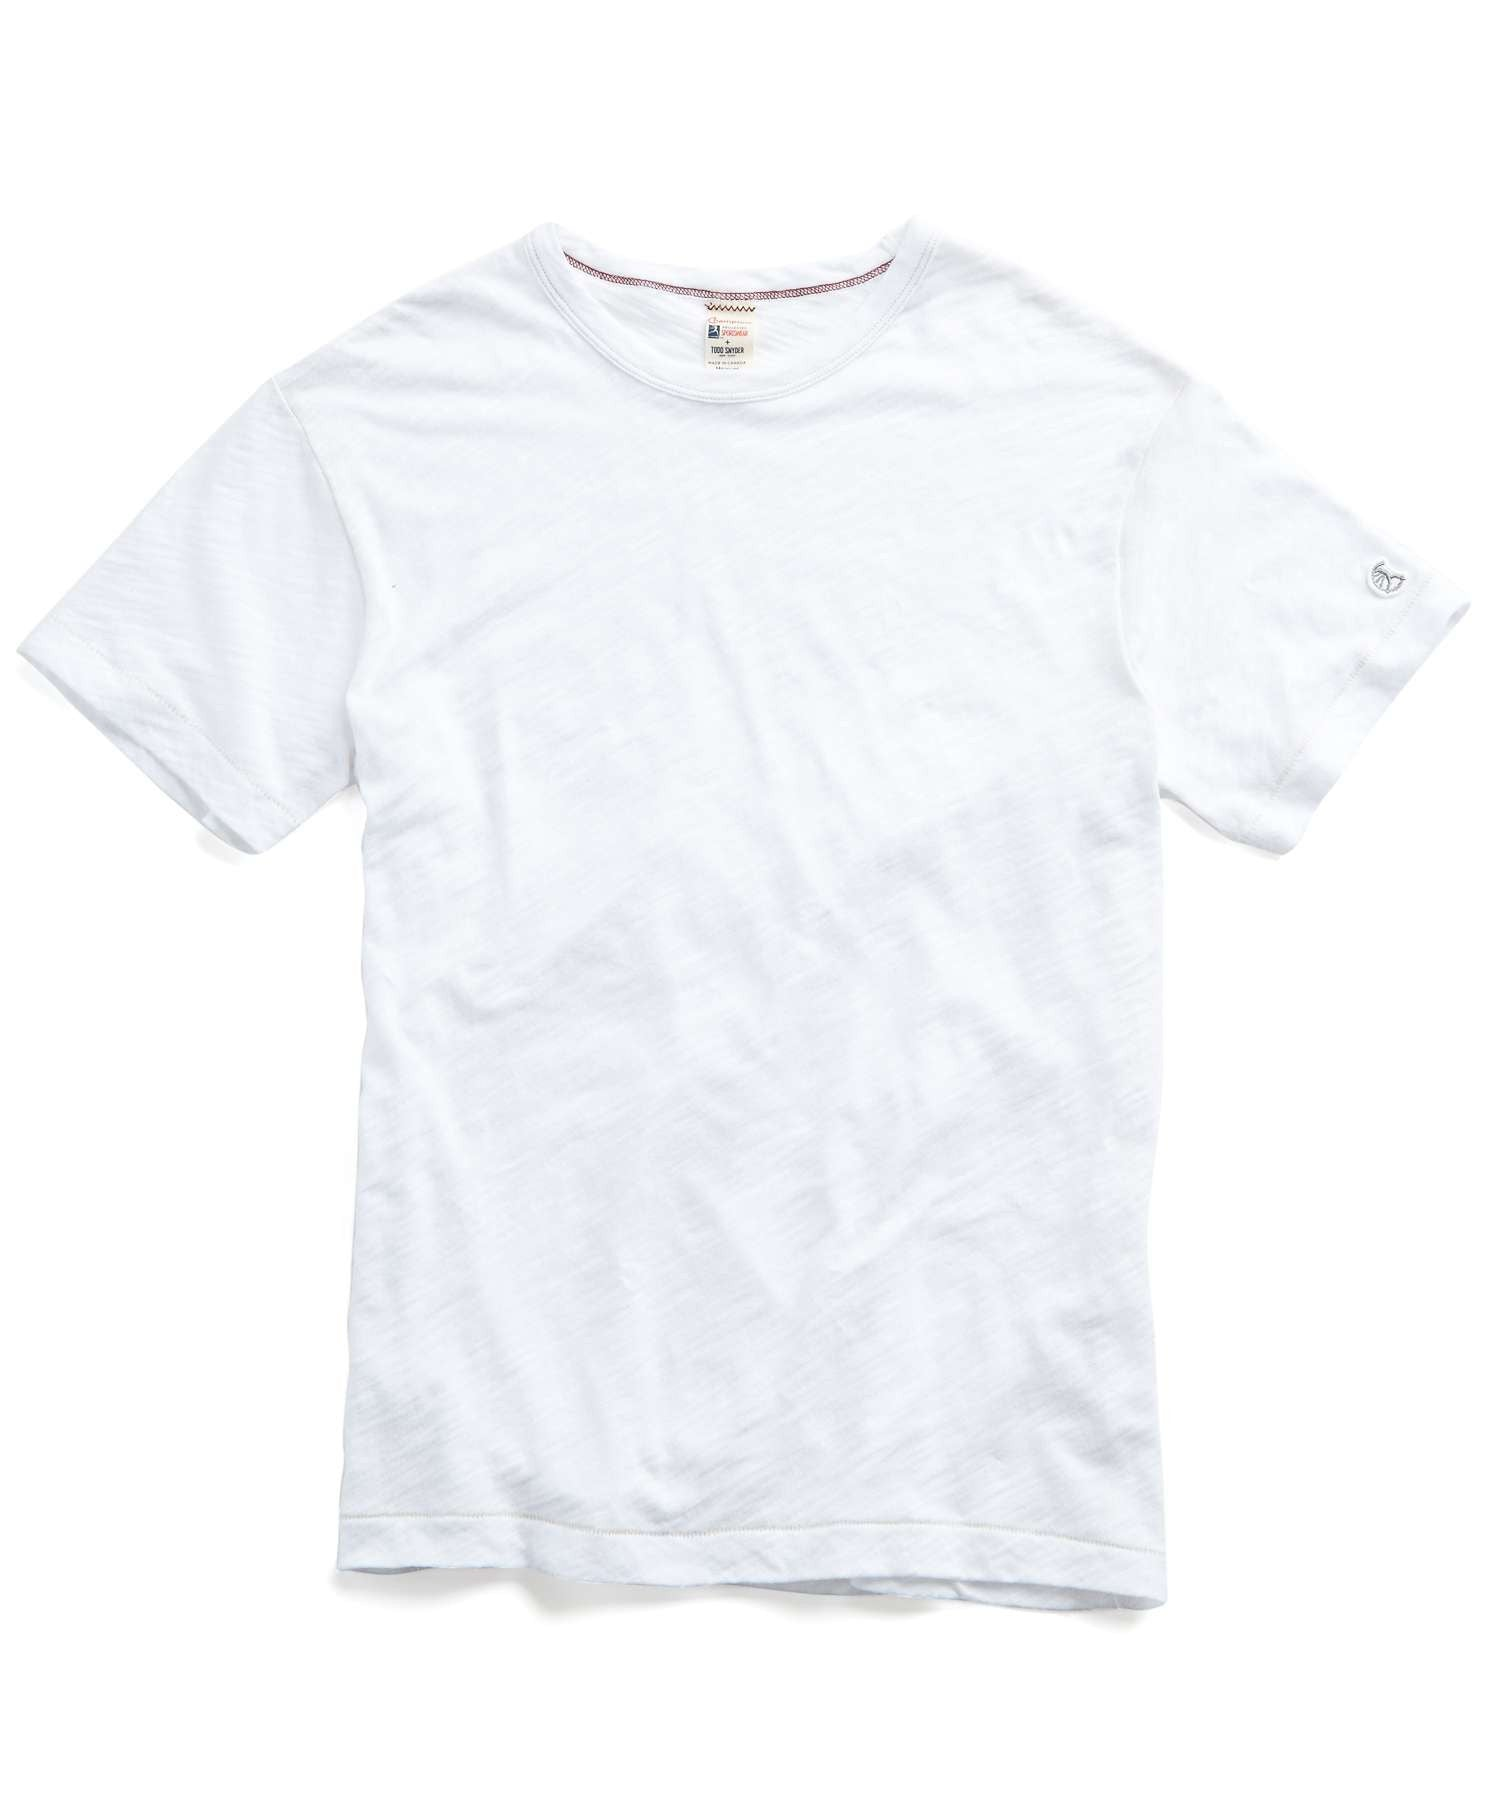 Slub Champion Tee in White